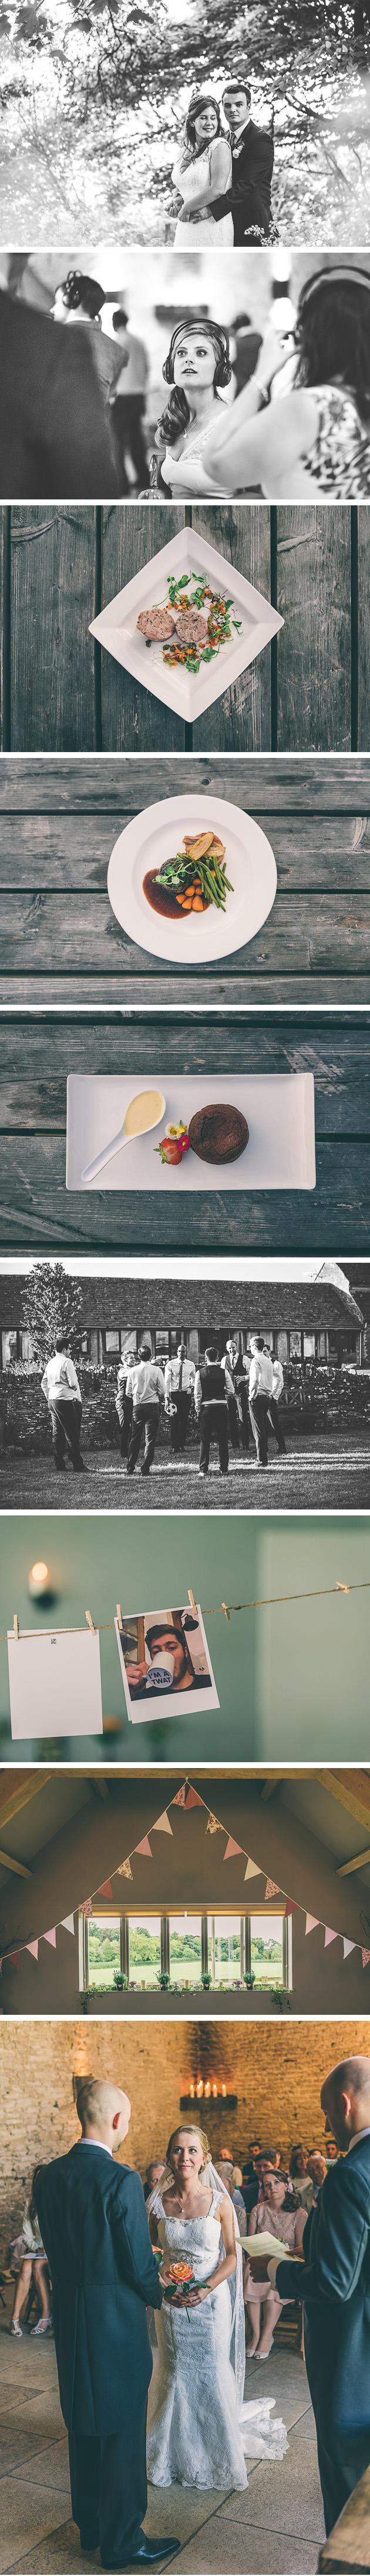 Wedding Meal at Great Tythe Barn